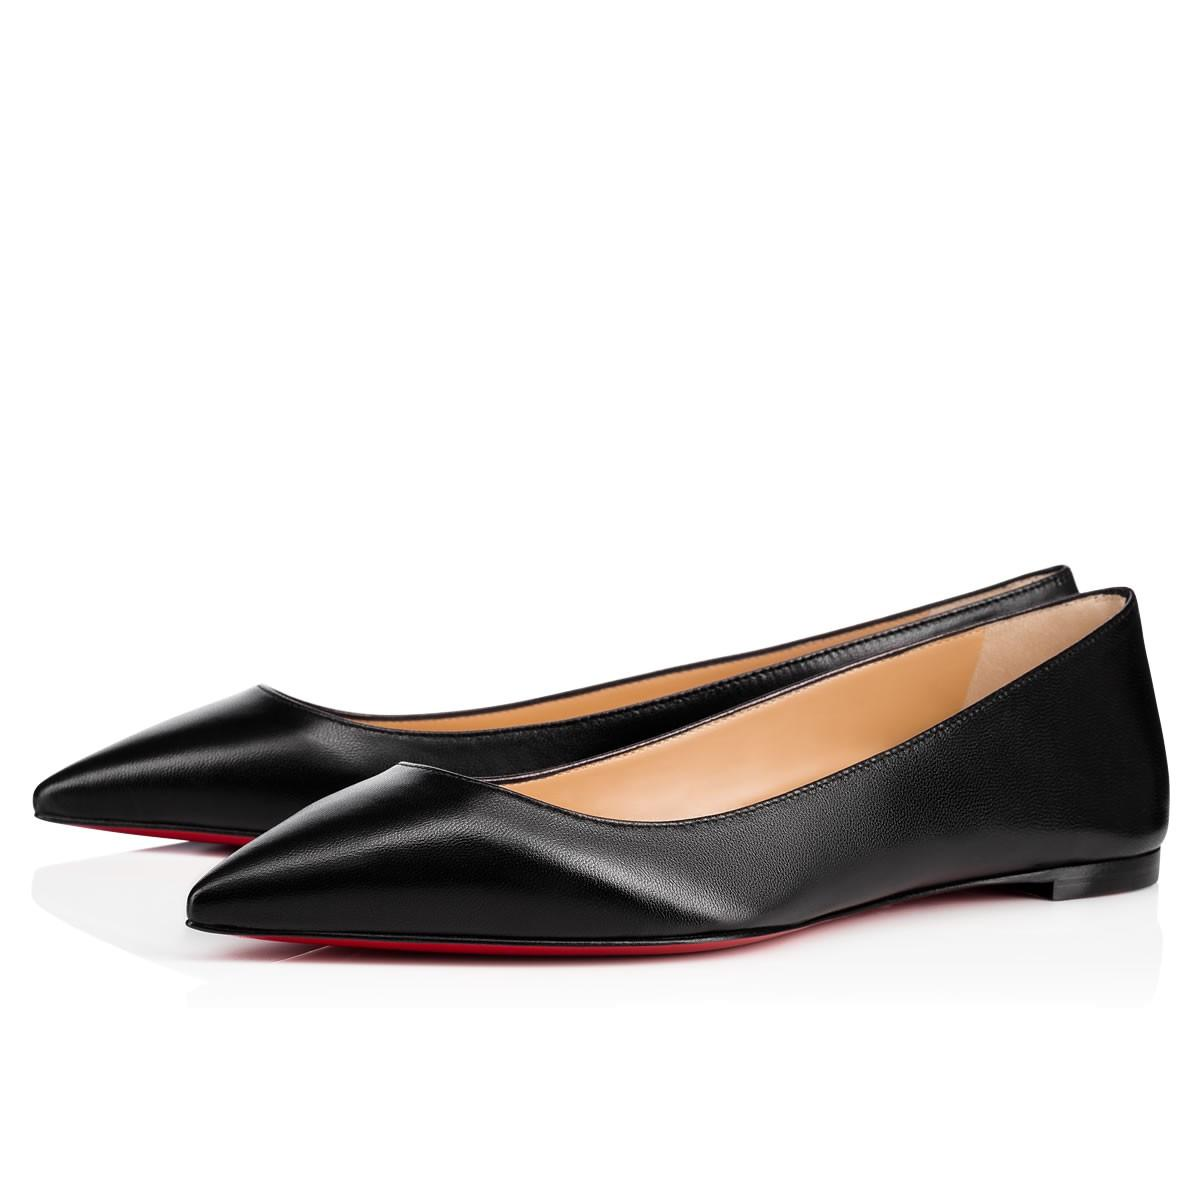 1b5c573959e Christian Louboutin Ballalla Smooth Leather Red Sole Ballet Flats In Black